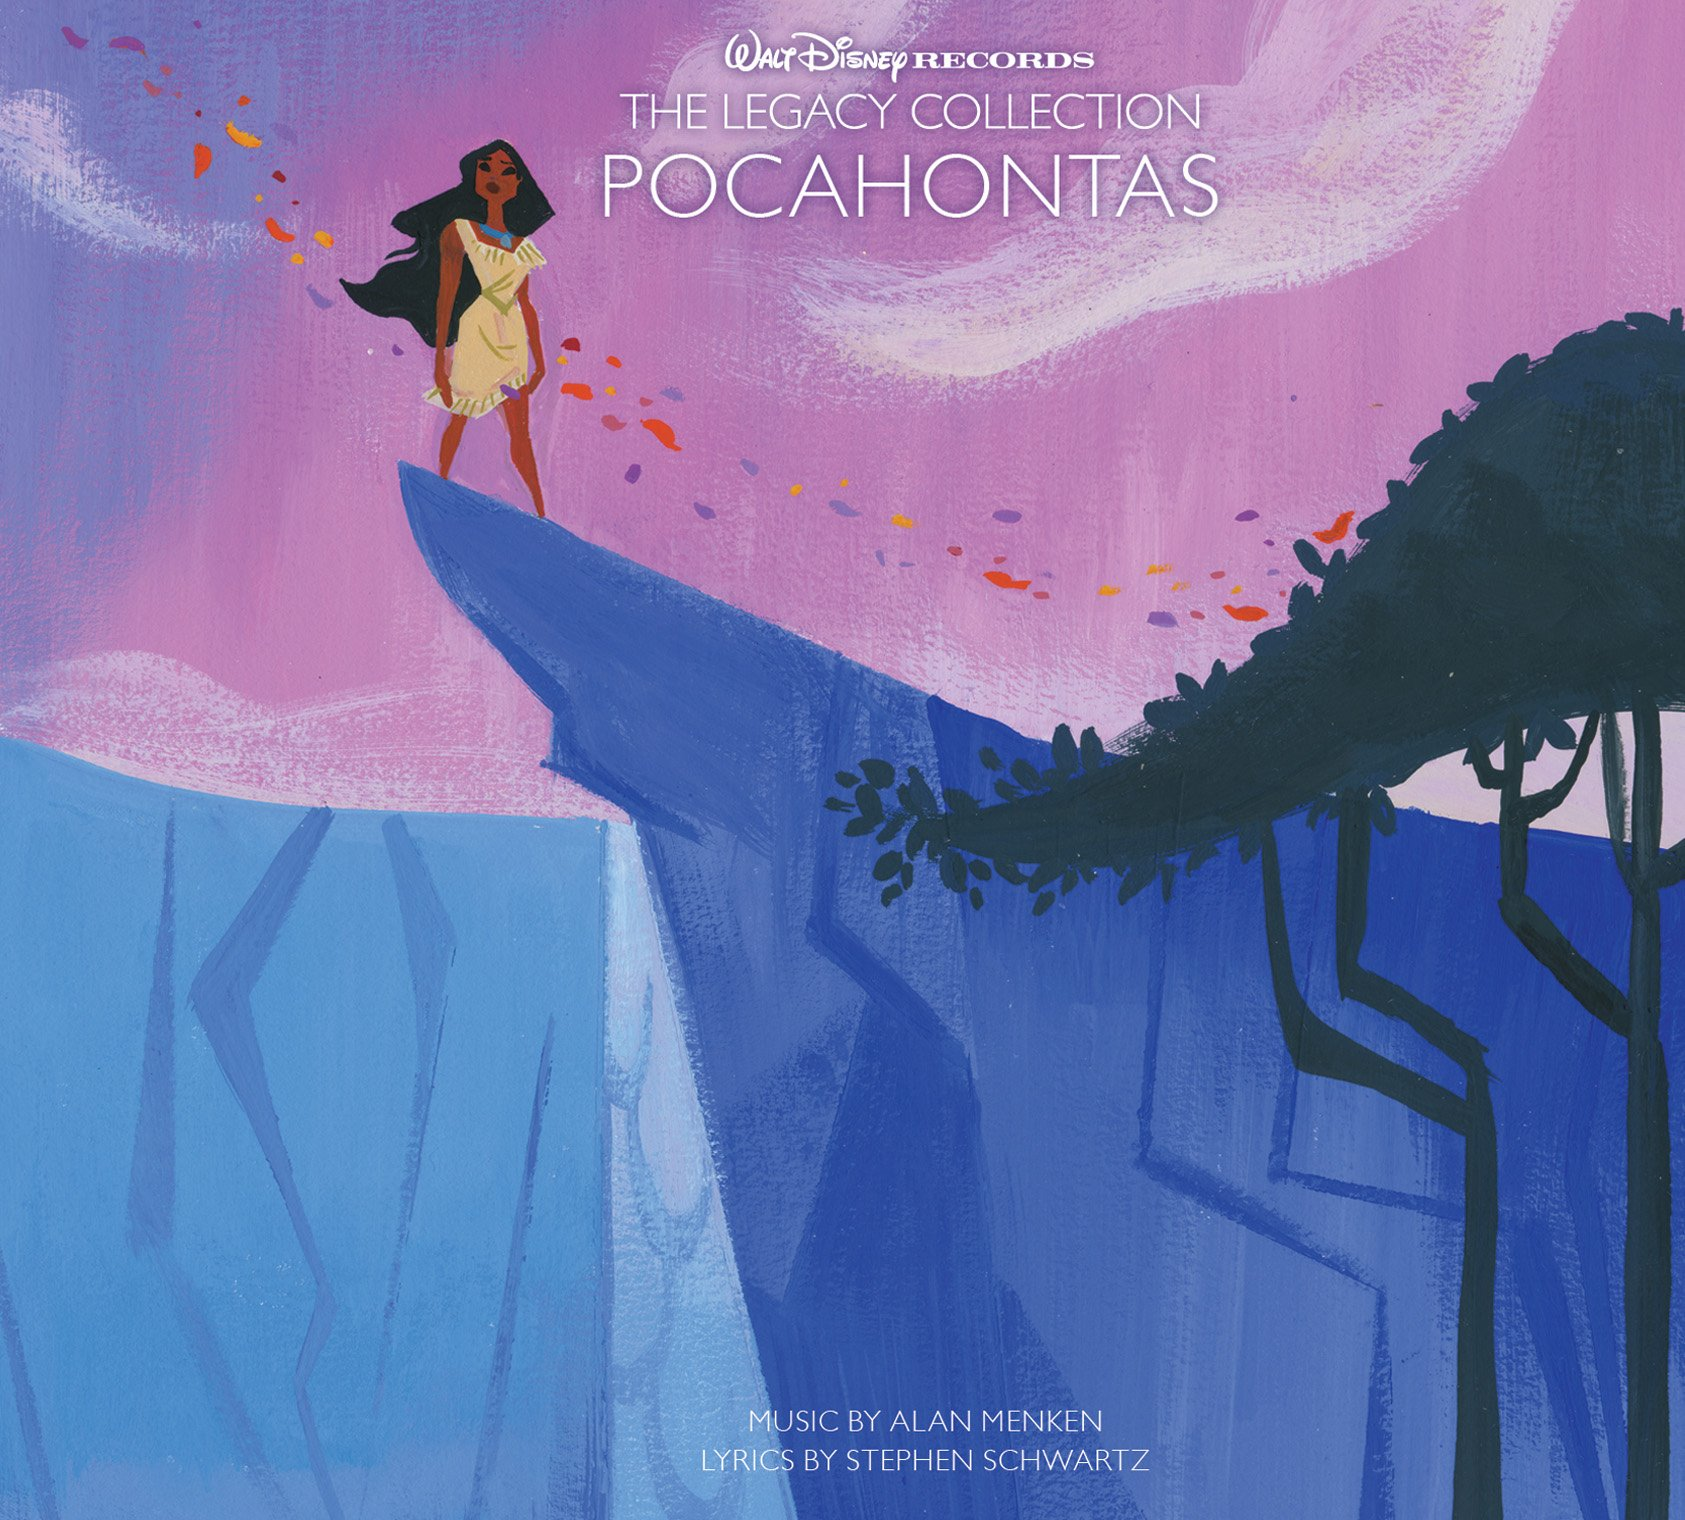 Walt Disney Records The Legacy Collection: Pocahontas [2 CD] by Walt Disney